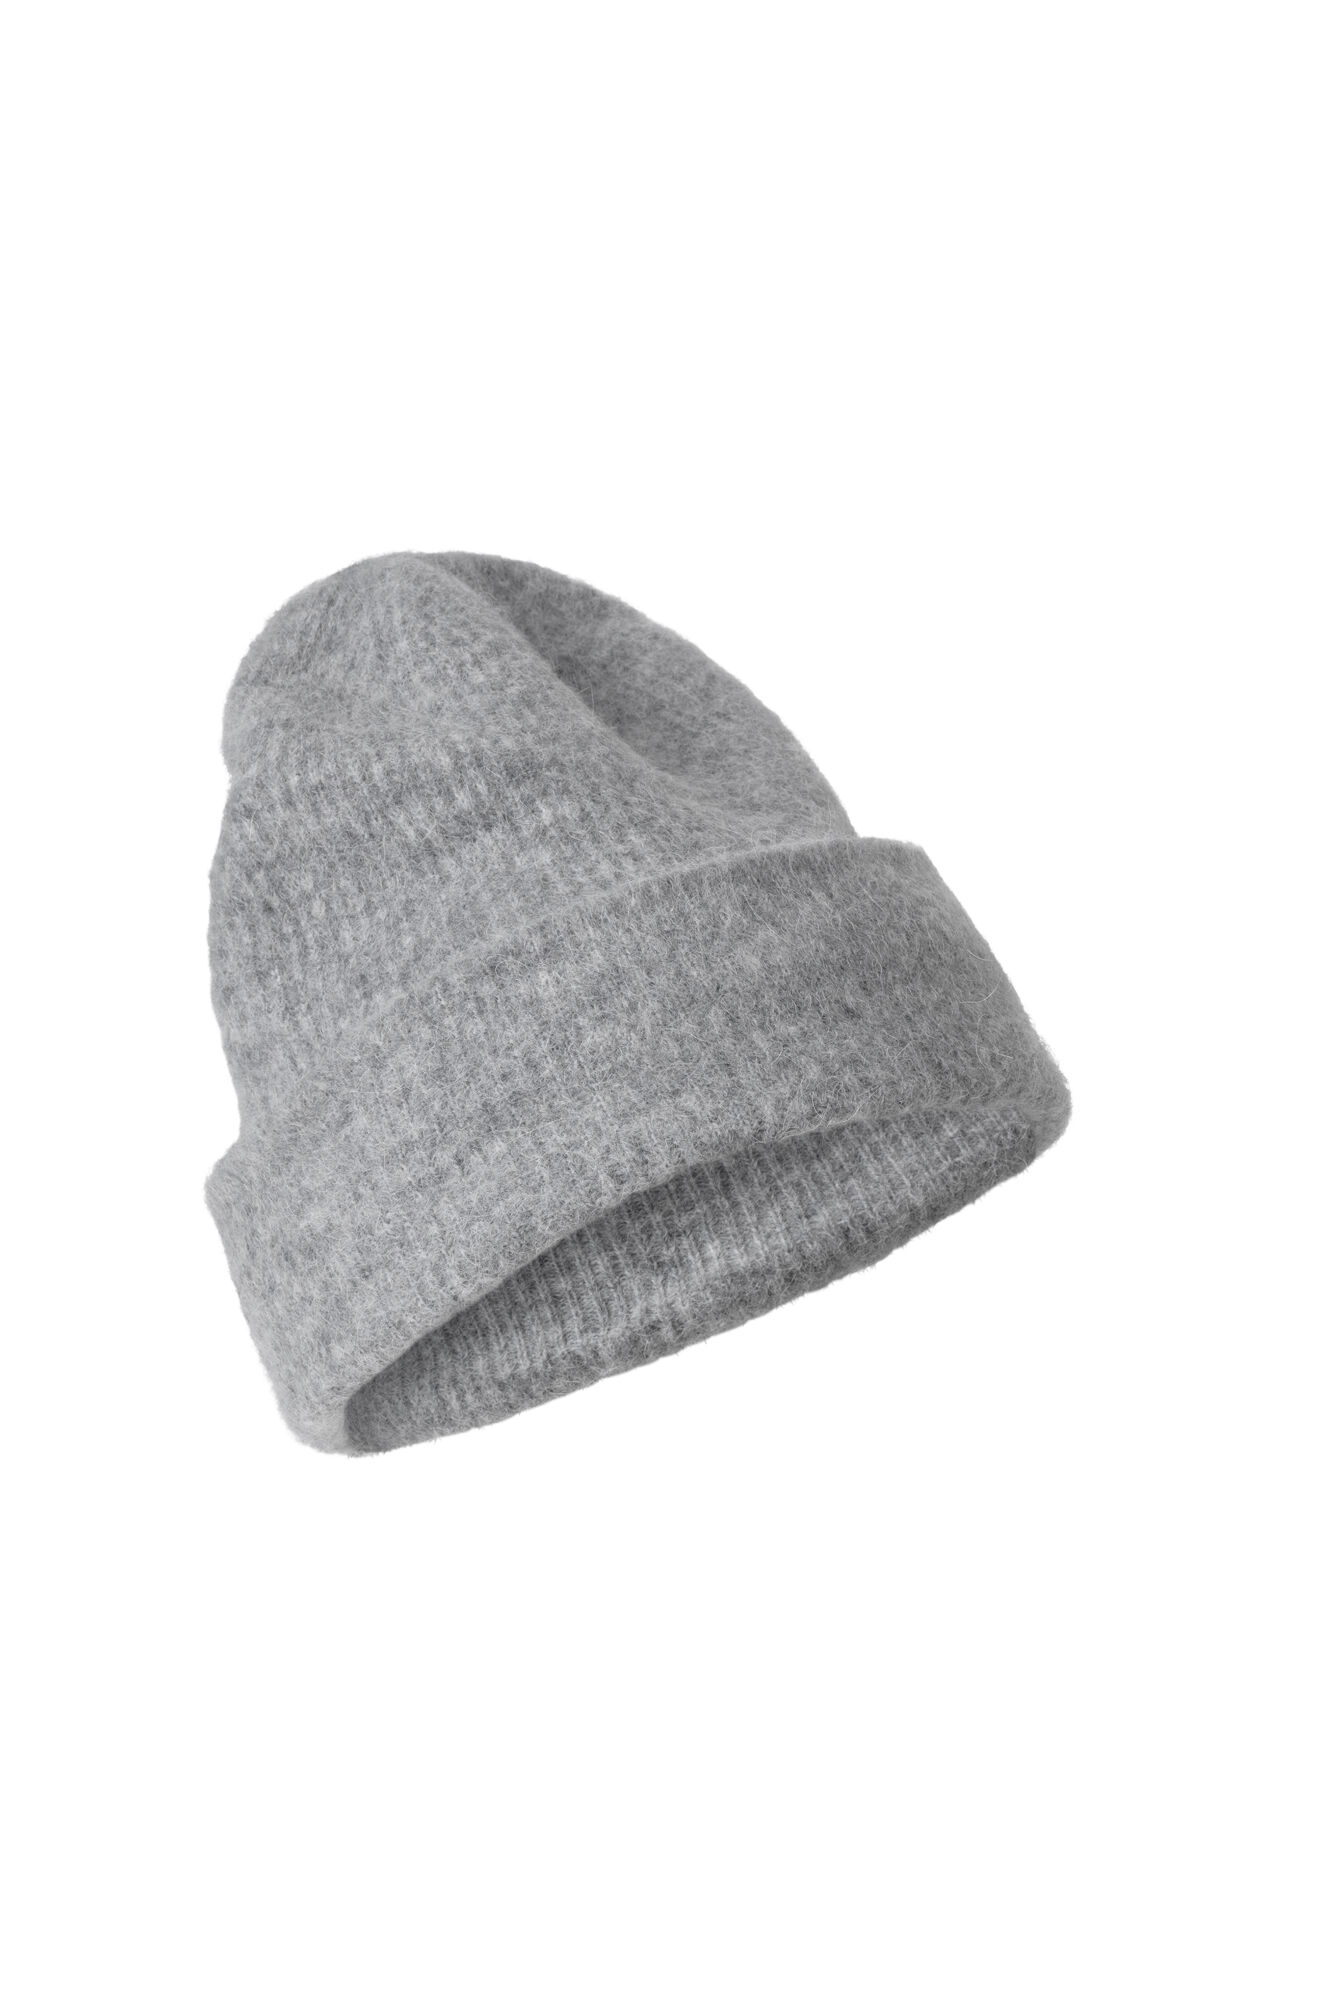 Nor hat 7355, GREY MEL.